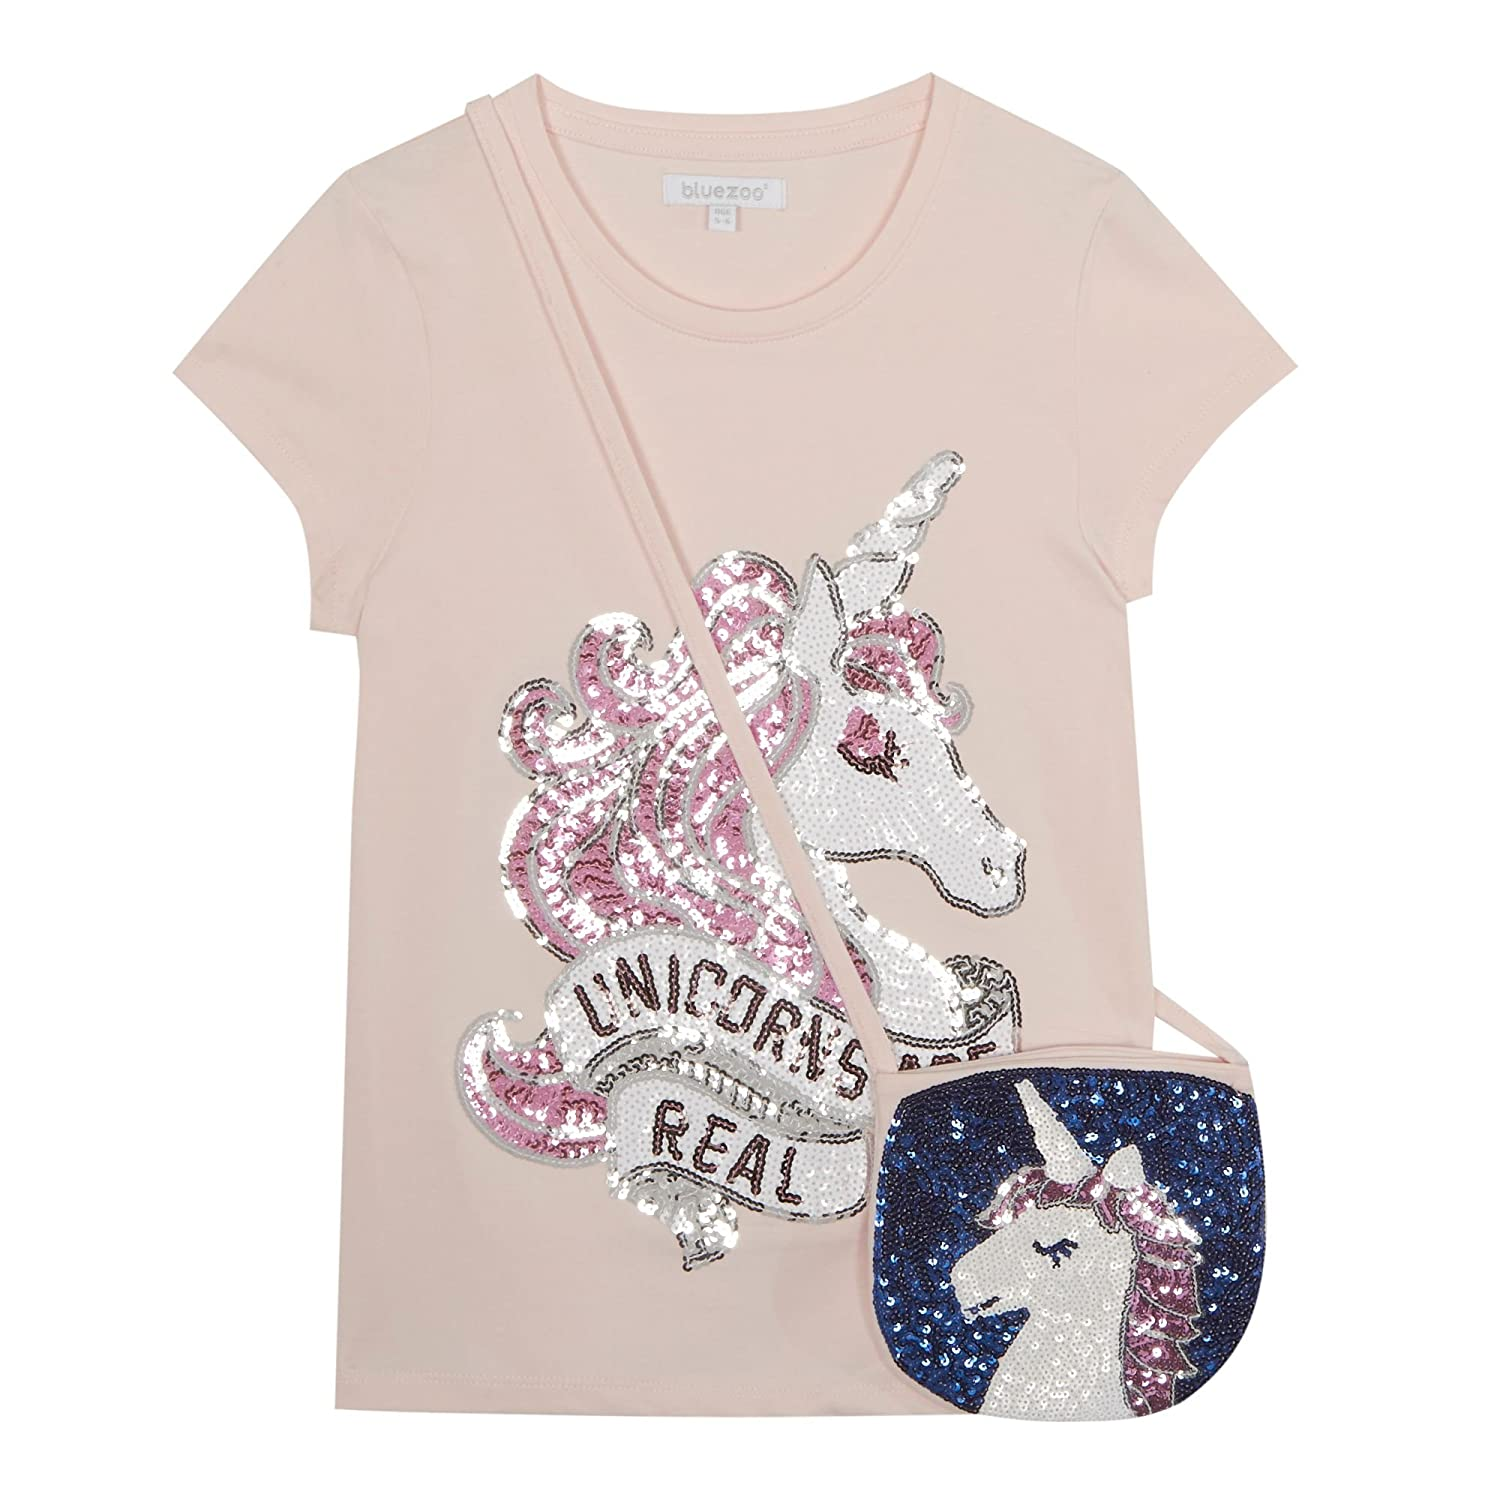 bluezoo Kids Girls' Pink Sequinned Unicorn T-Shirt and Bag Set